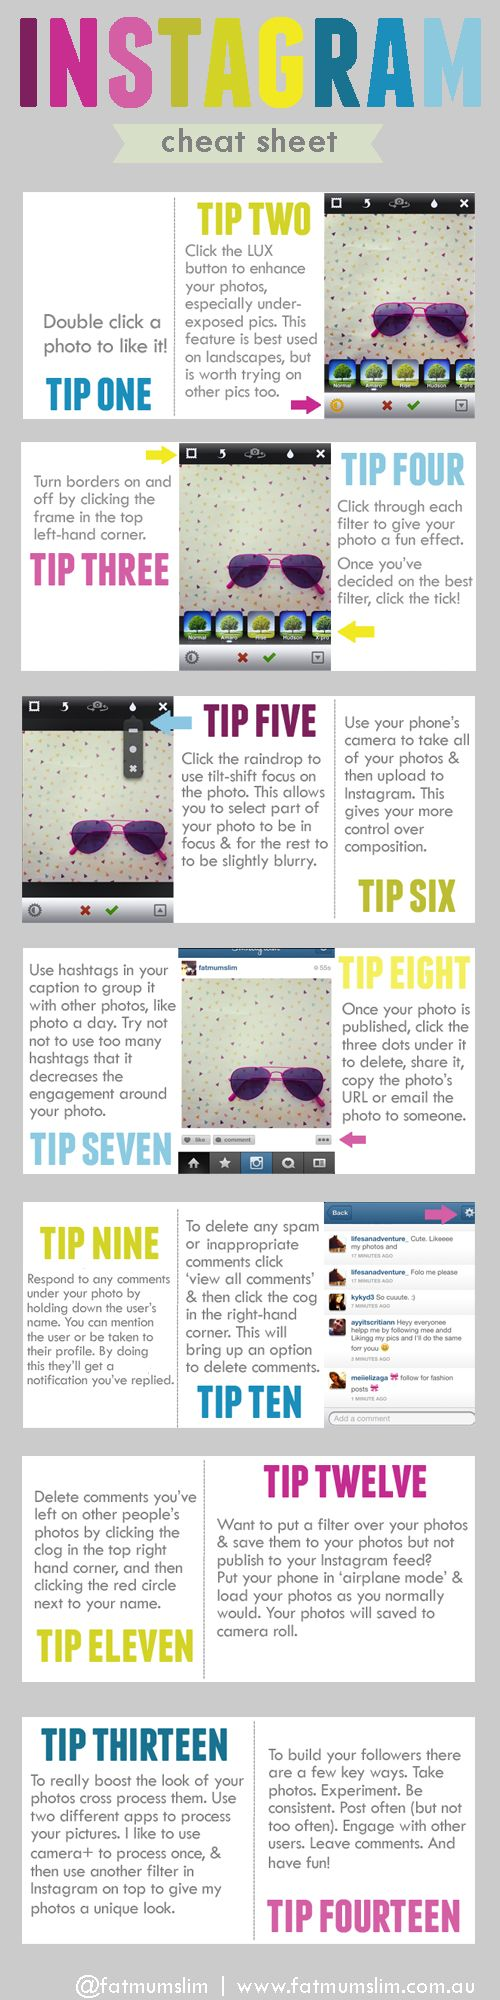 I {heart} Instagram:  here is a Cheat Sheet from @Fat Mum Slim